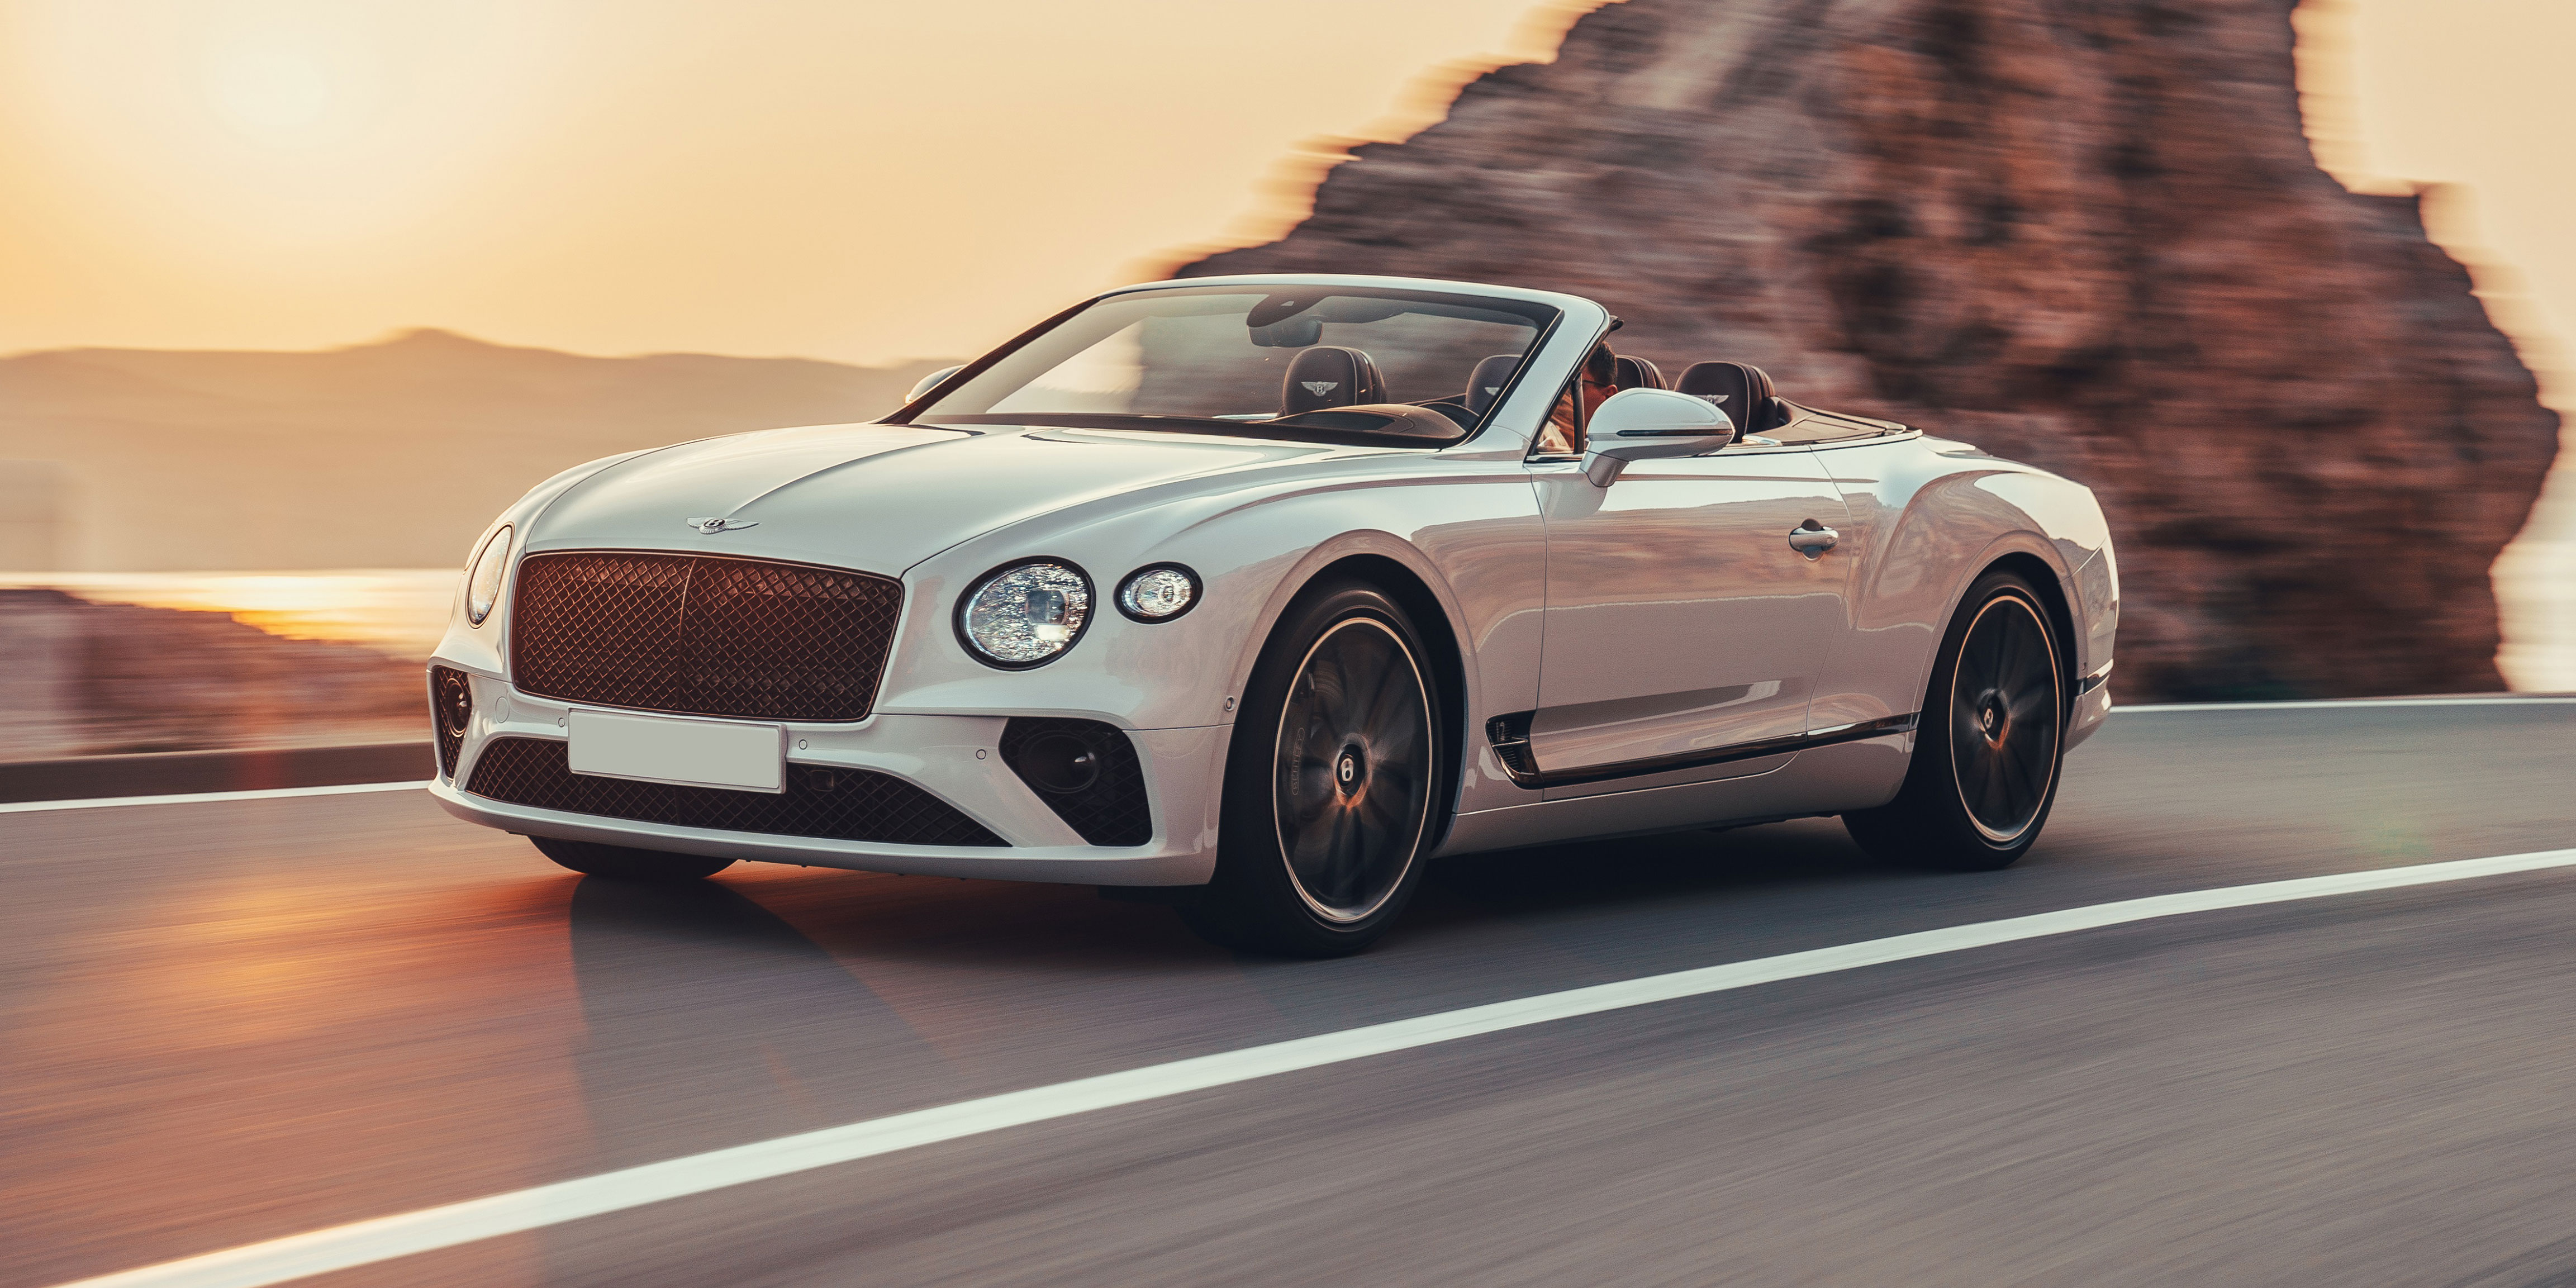 Bentley Continental Gt Convertible Review 2021 Carwow